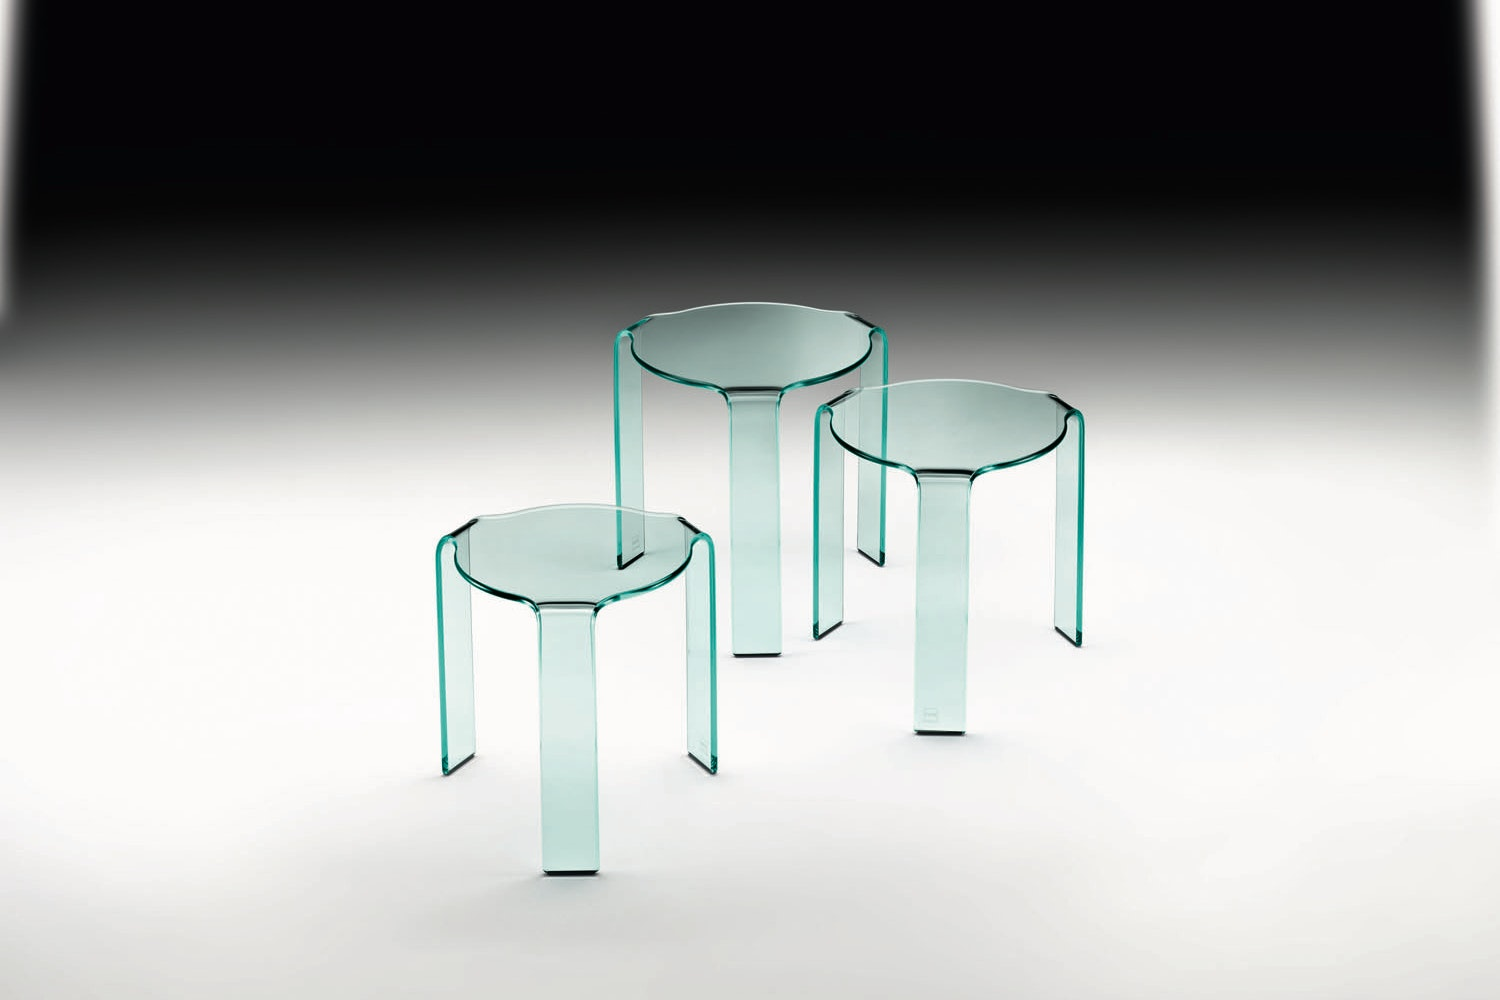 Omaggio Alvar Aalto Tris Side Table by CRS Fiam for Fiam Italia